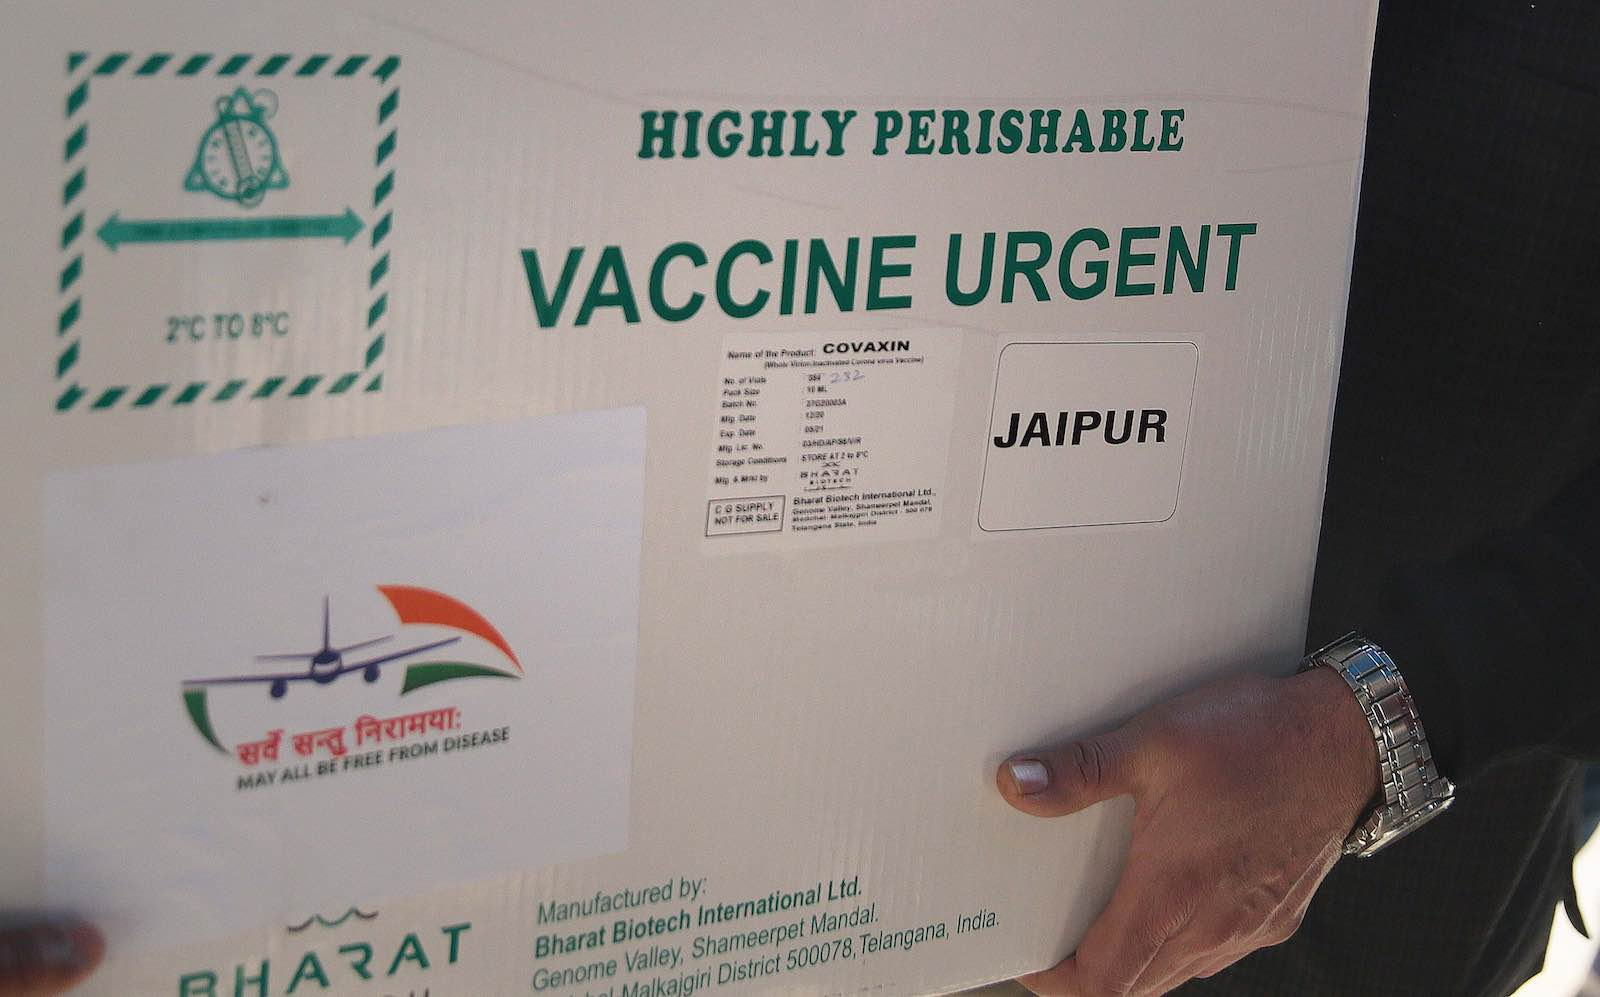 Delivery of the first consignment of 1000 vials of Bharat Biotech's COVAXIN arrived to start Covid-19 vaccination drive from January 16, at State Vaccine Centre on January 13, 2021 in Jaipur, India (Himanshu Vyas/Hindustan Times via Getty Images)